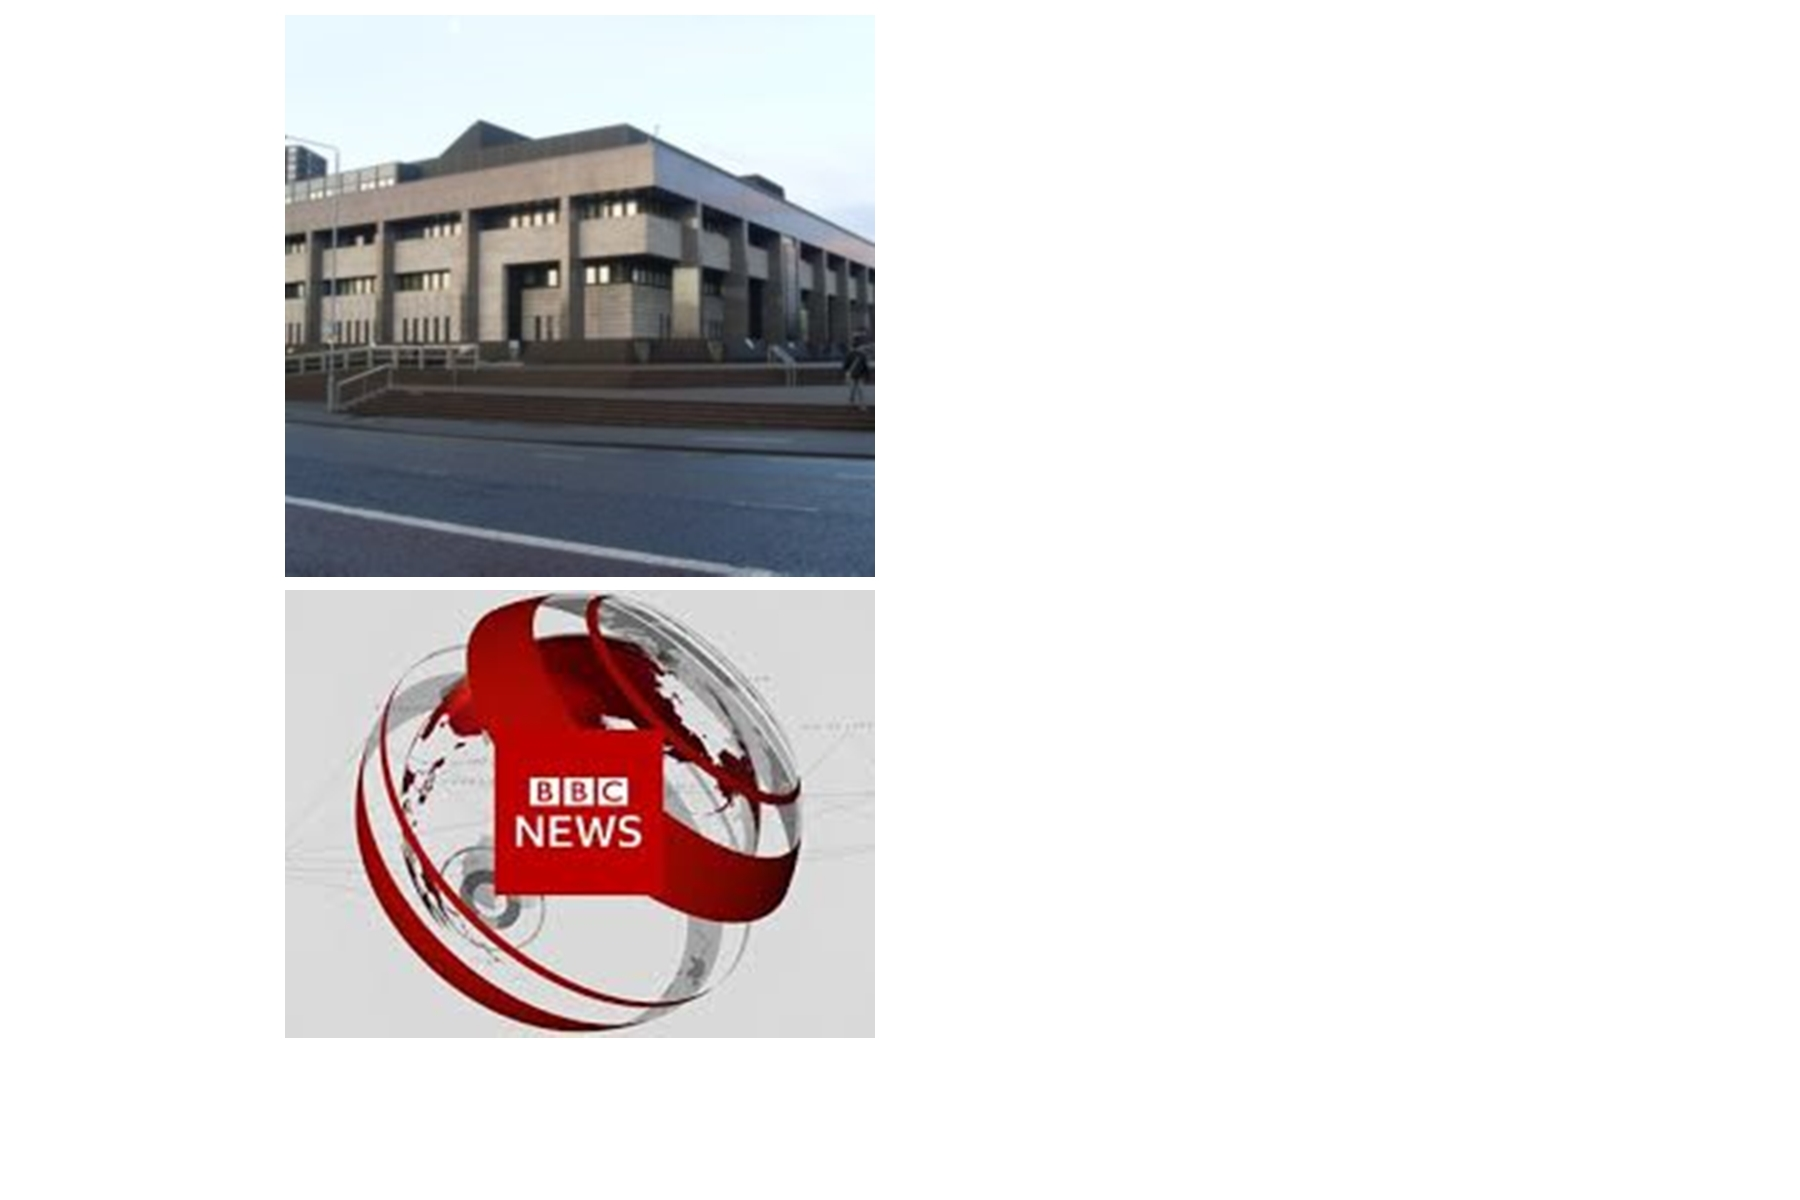 """BBC News Use Selective Bias To Report About Innocent Man, Mr Ahmed, Adamantly Pleading """"Not Guilty"""" To """"School Girls Feeling Intimidated After Approach In Lane"""""""